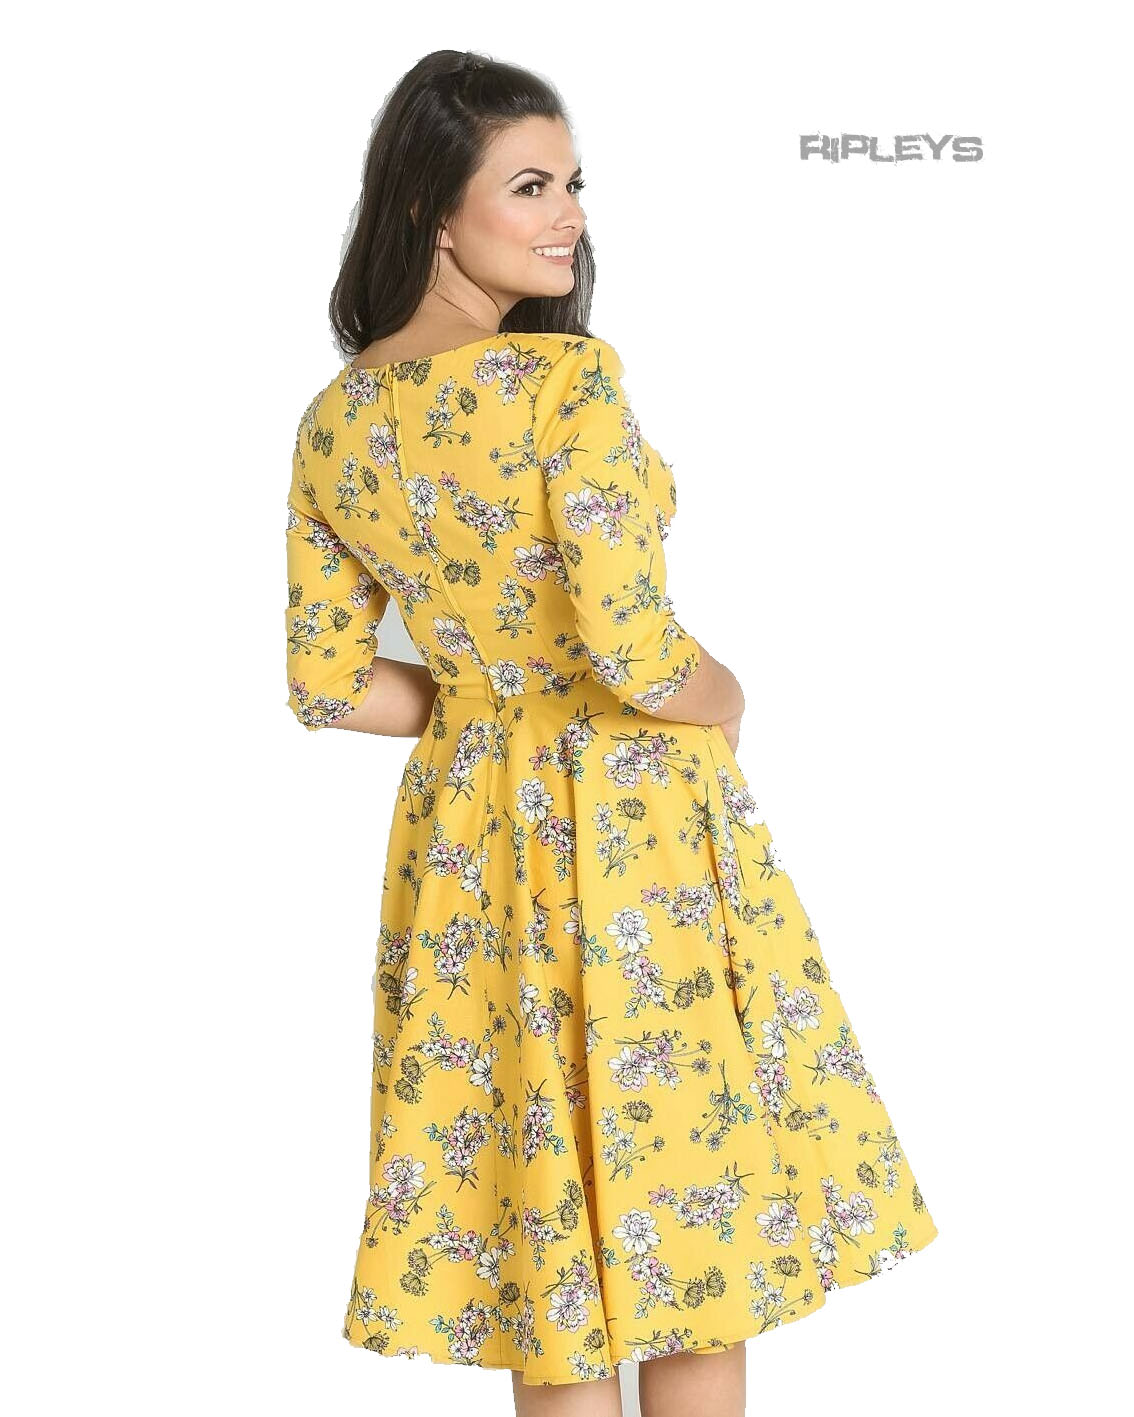 Hell-Bunny-40s-50s-Pin-Up-Vintage-Dress-MURIEL-Flowers-Yellow-All-Sizes thumbnail 4